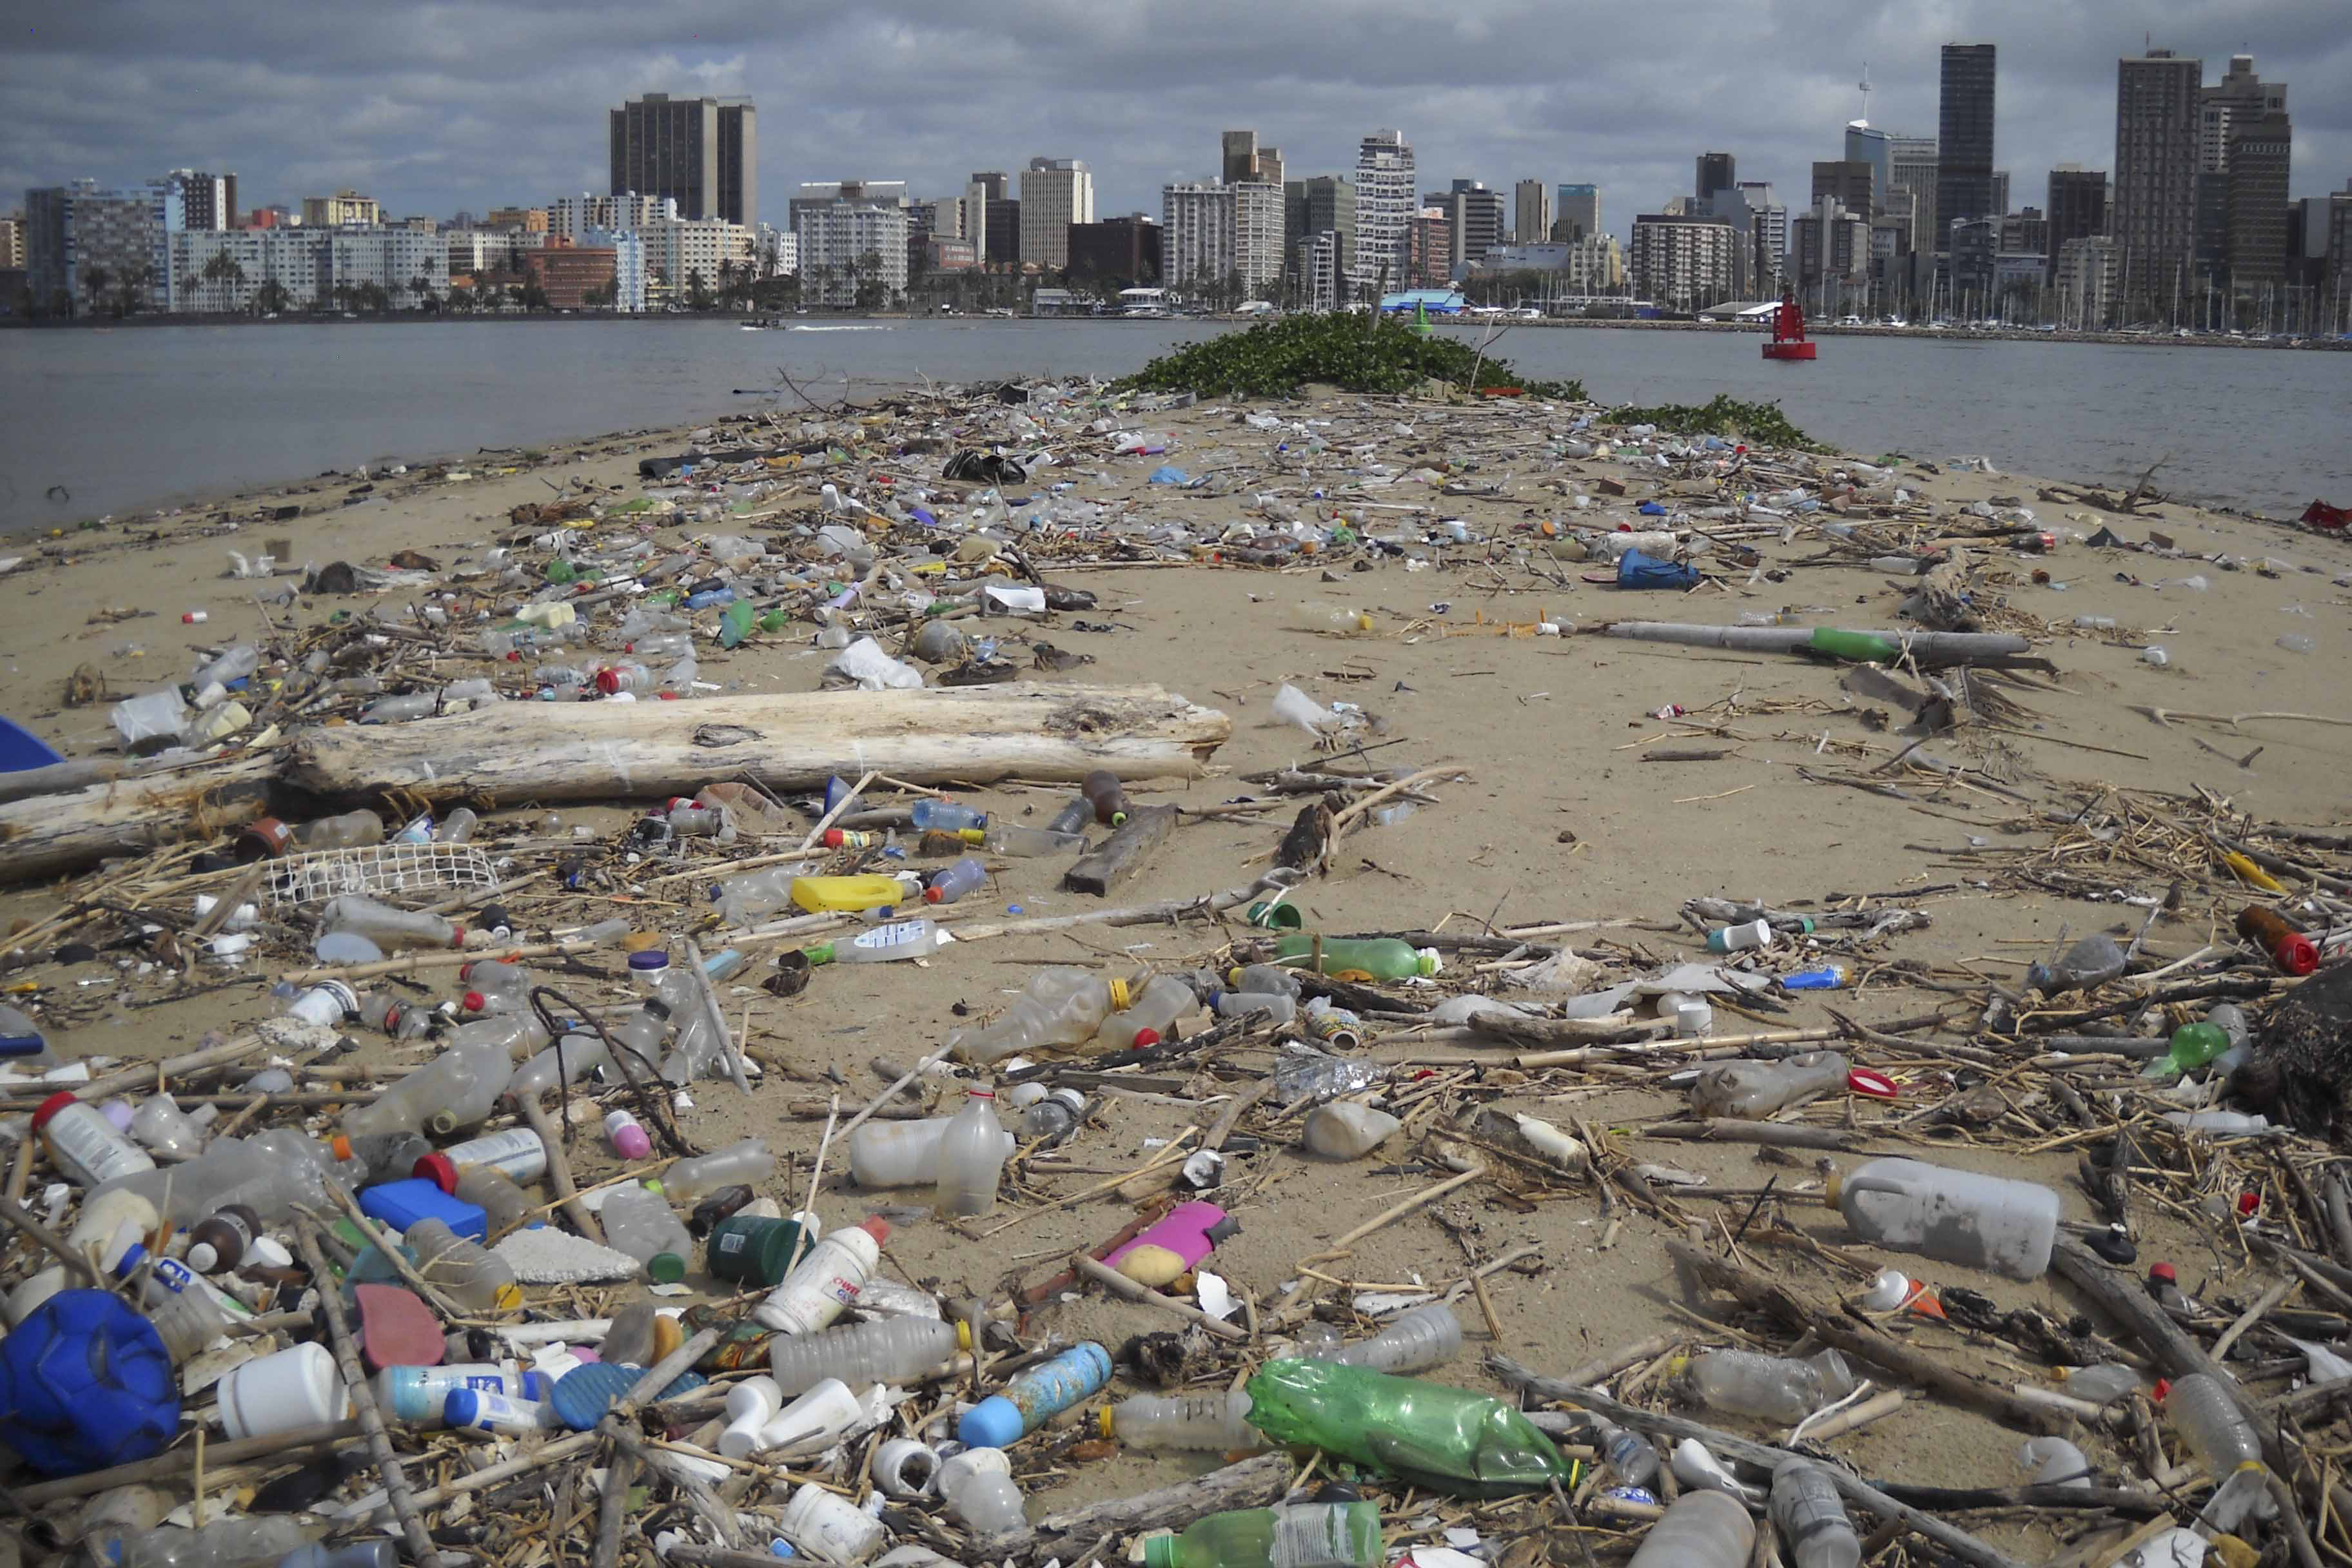 November 2017: A tide of plastic detritus washes into Durban's harbour and up on the surrounding beaches every year. Despite regular clean-up campaigns, a fresh influx of plastic appears after each heavy rainfall. (Photograph by Johnny Vassilaros)